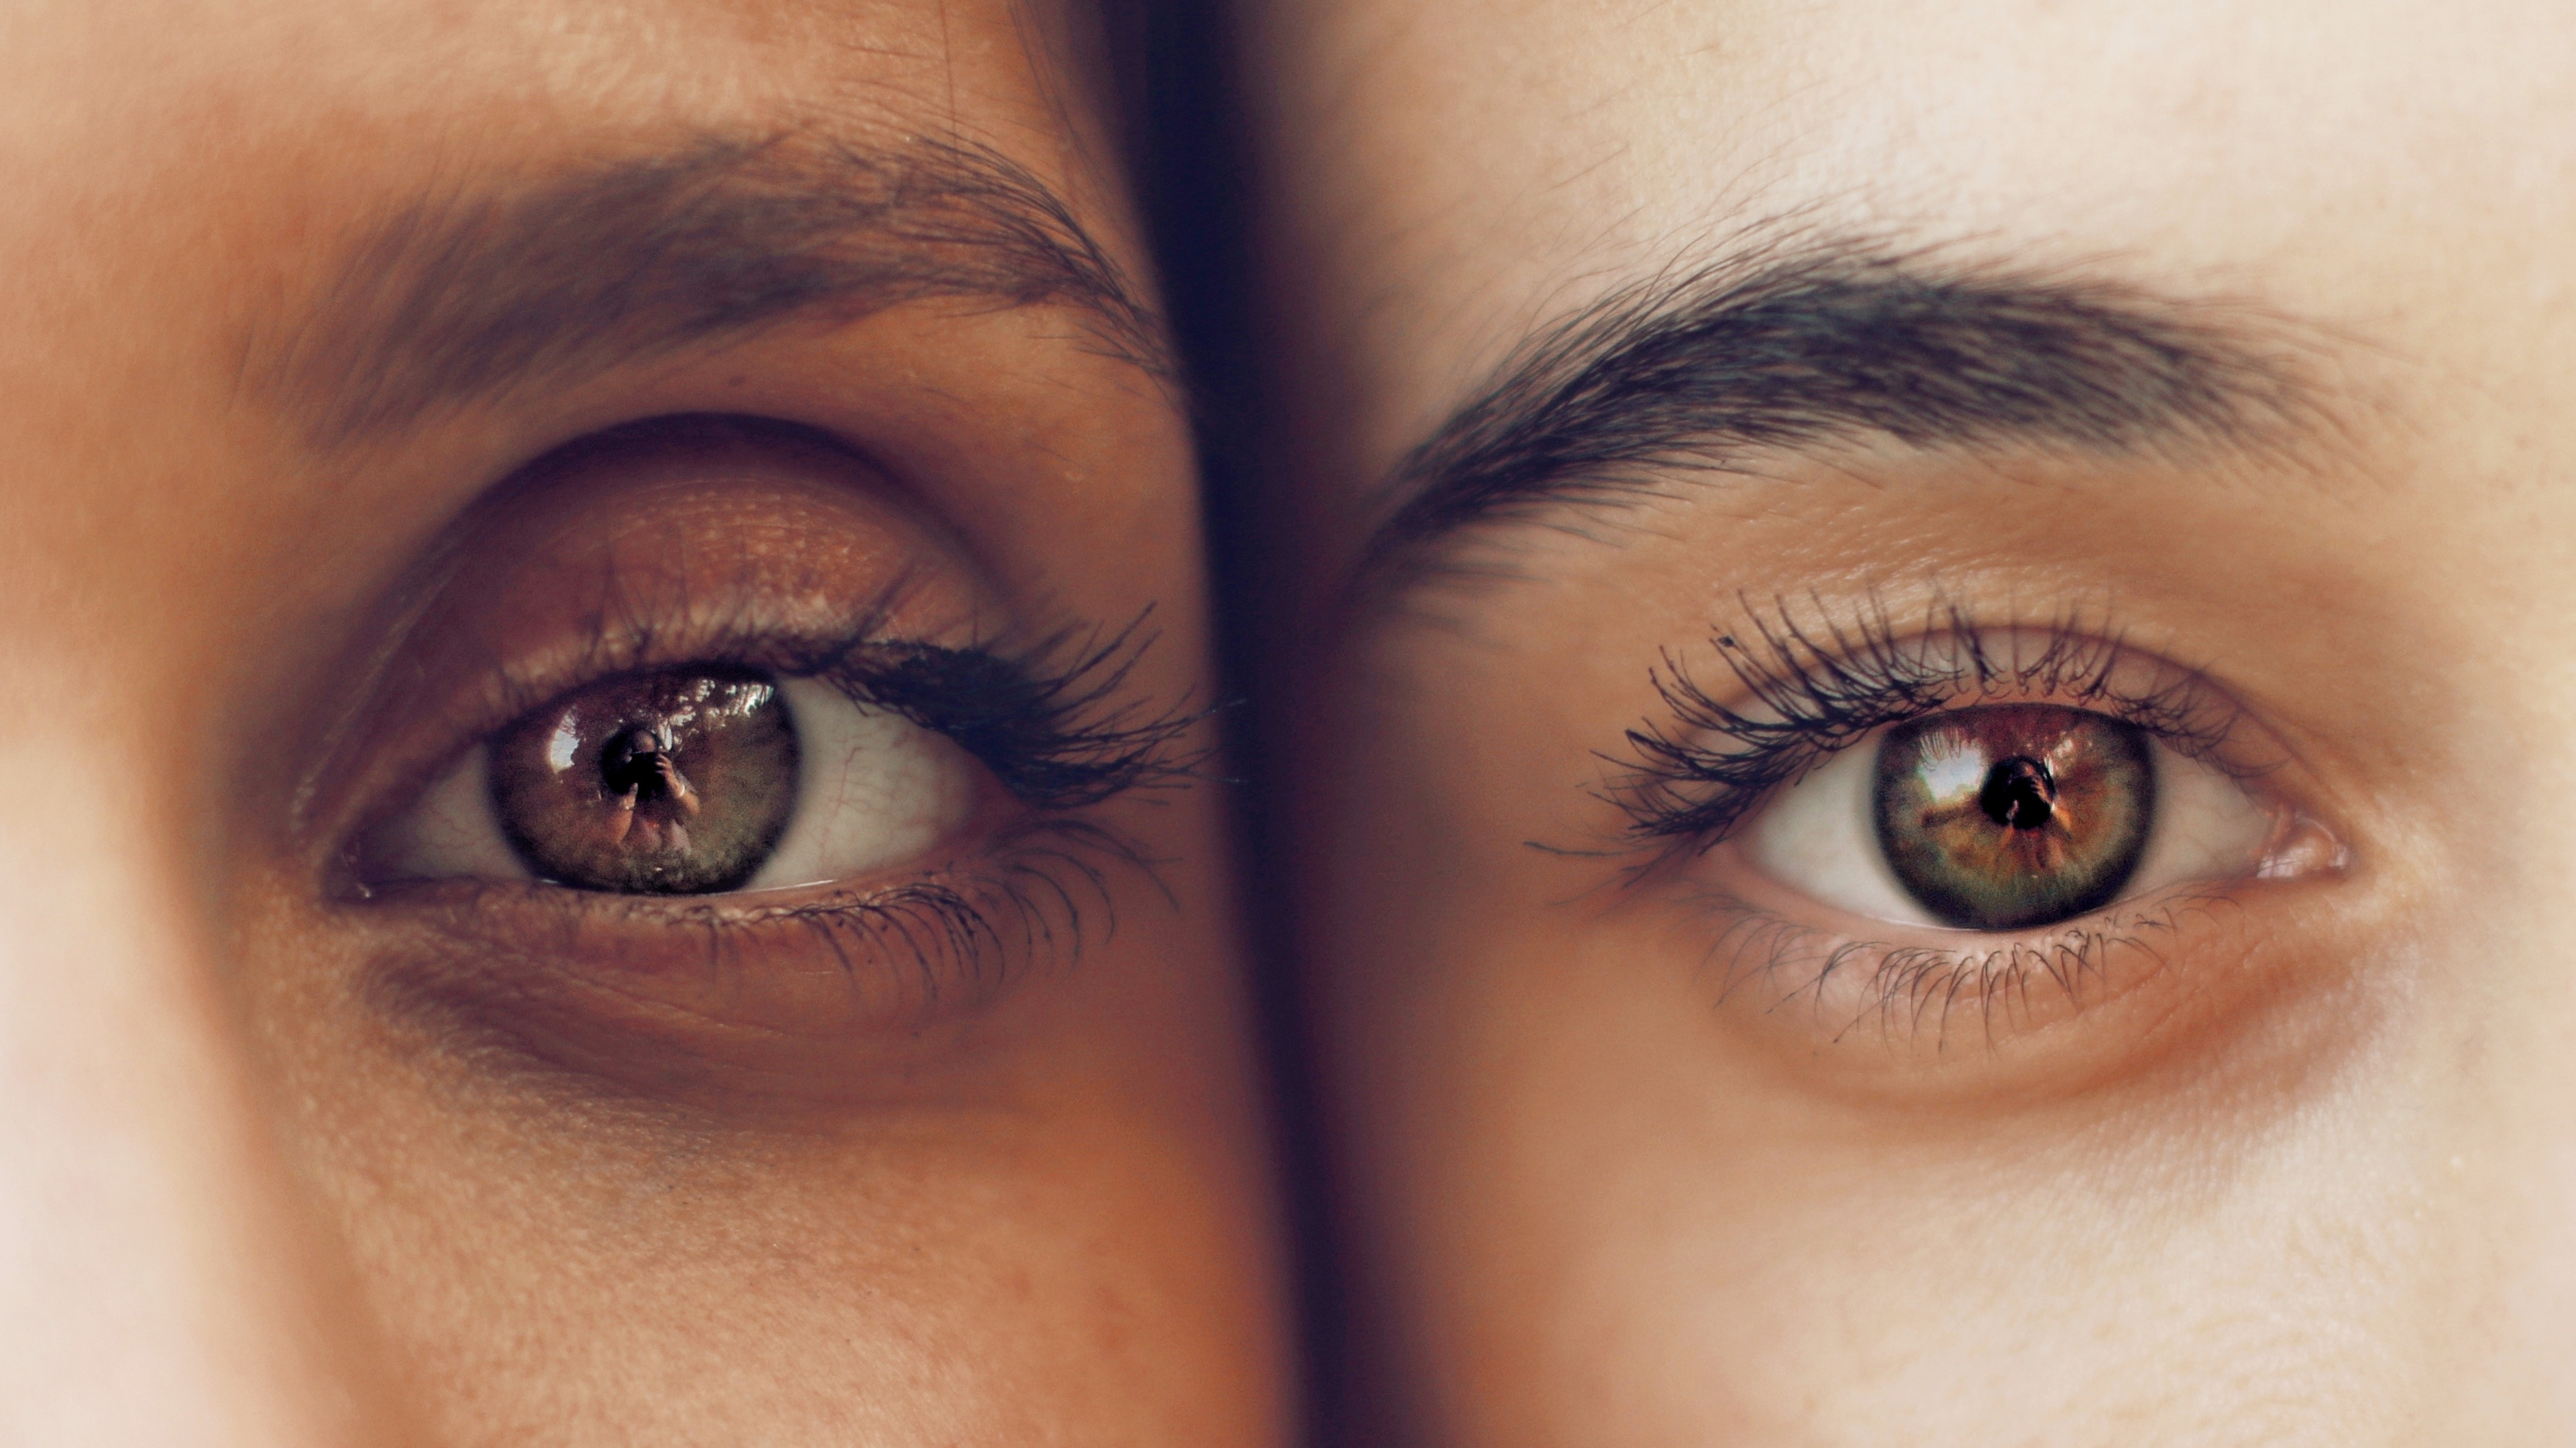 Image of two women side by side.